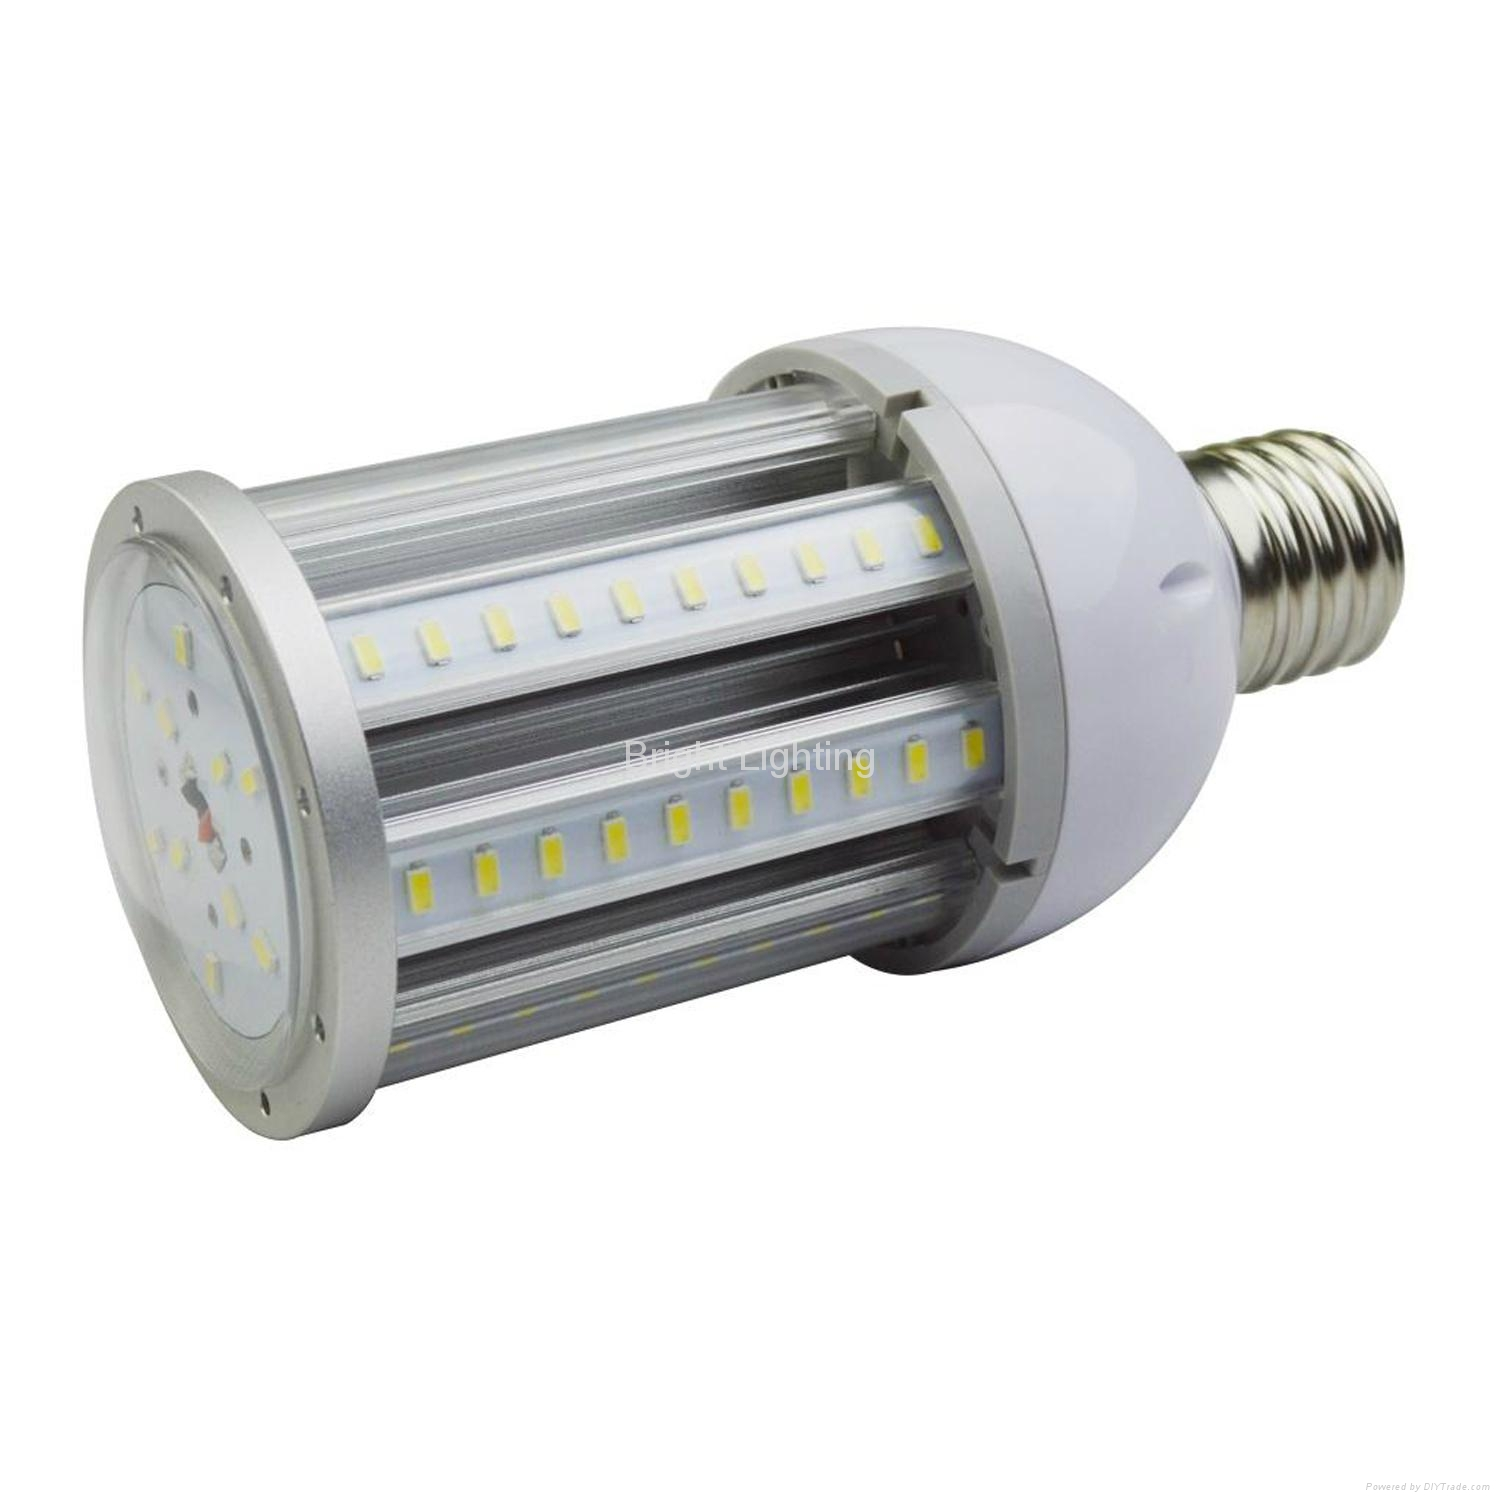 SMD2835 3528 waterproof LED corn light with 3 years warranty 2